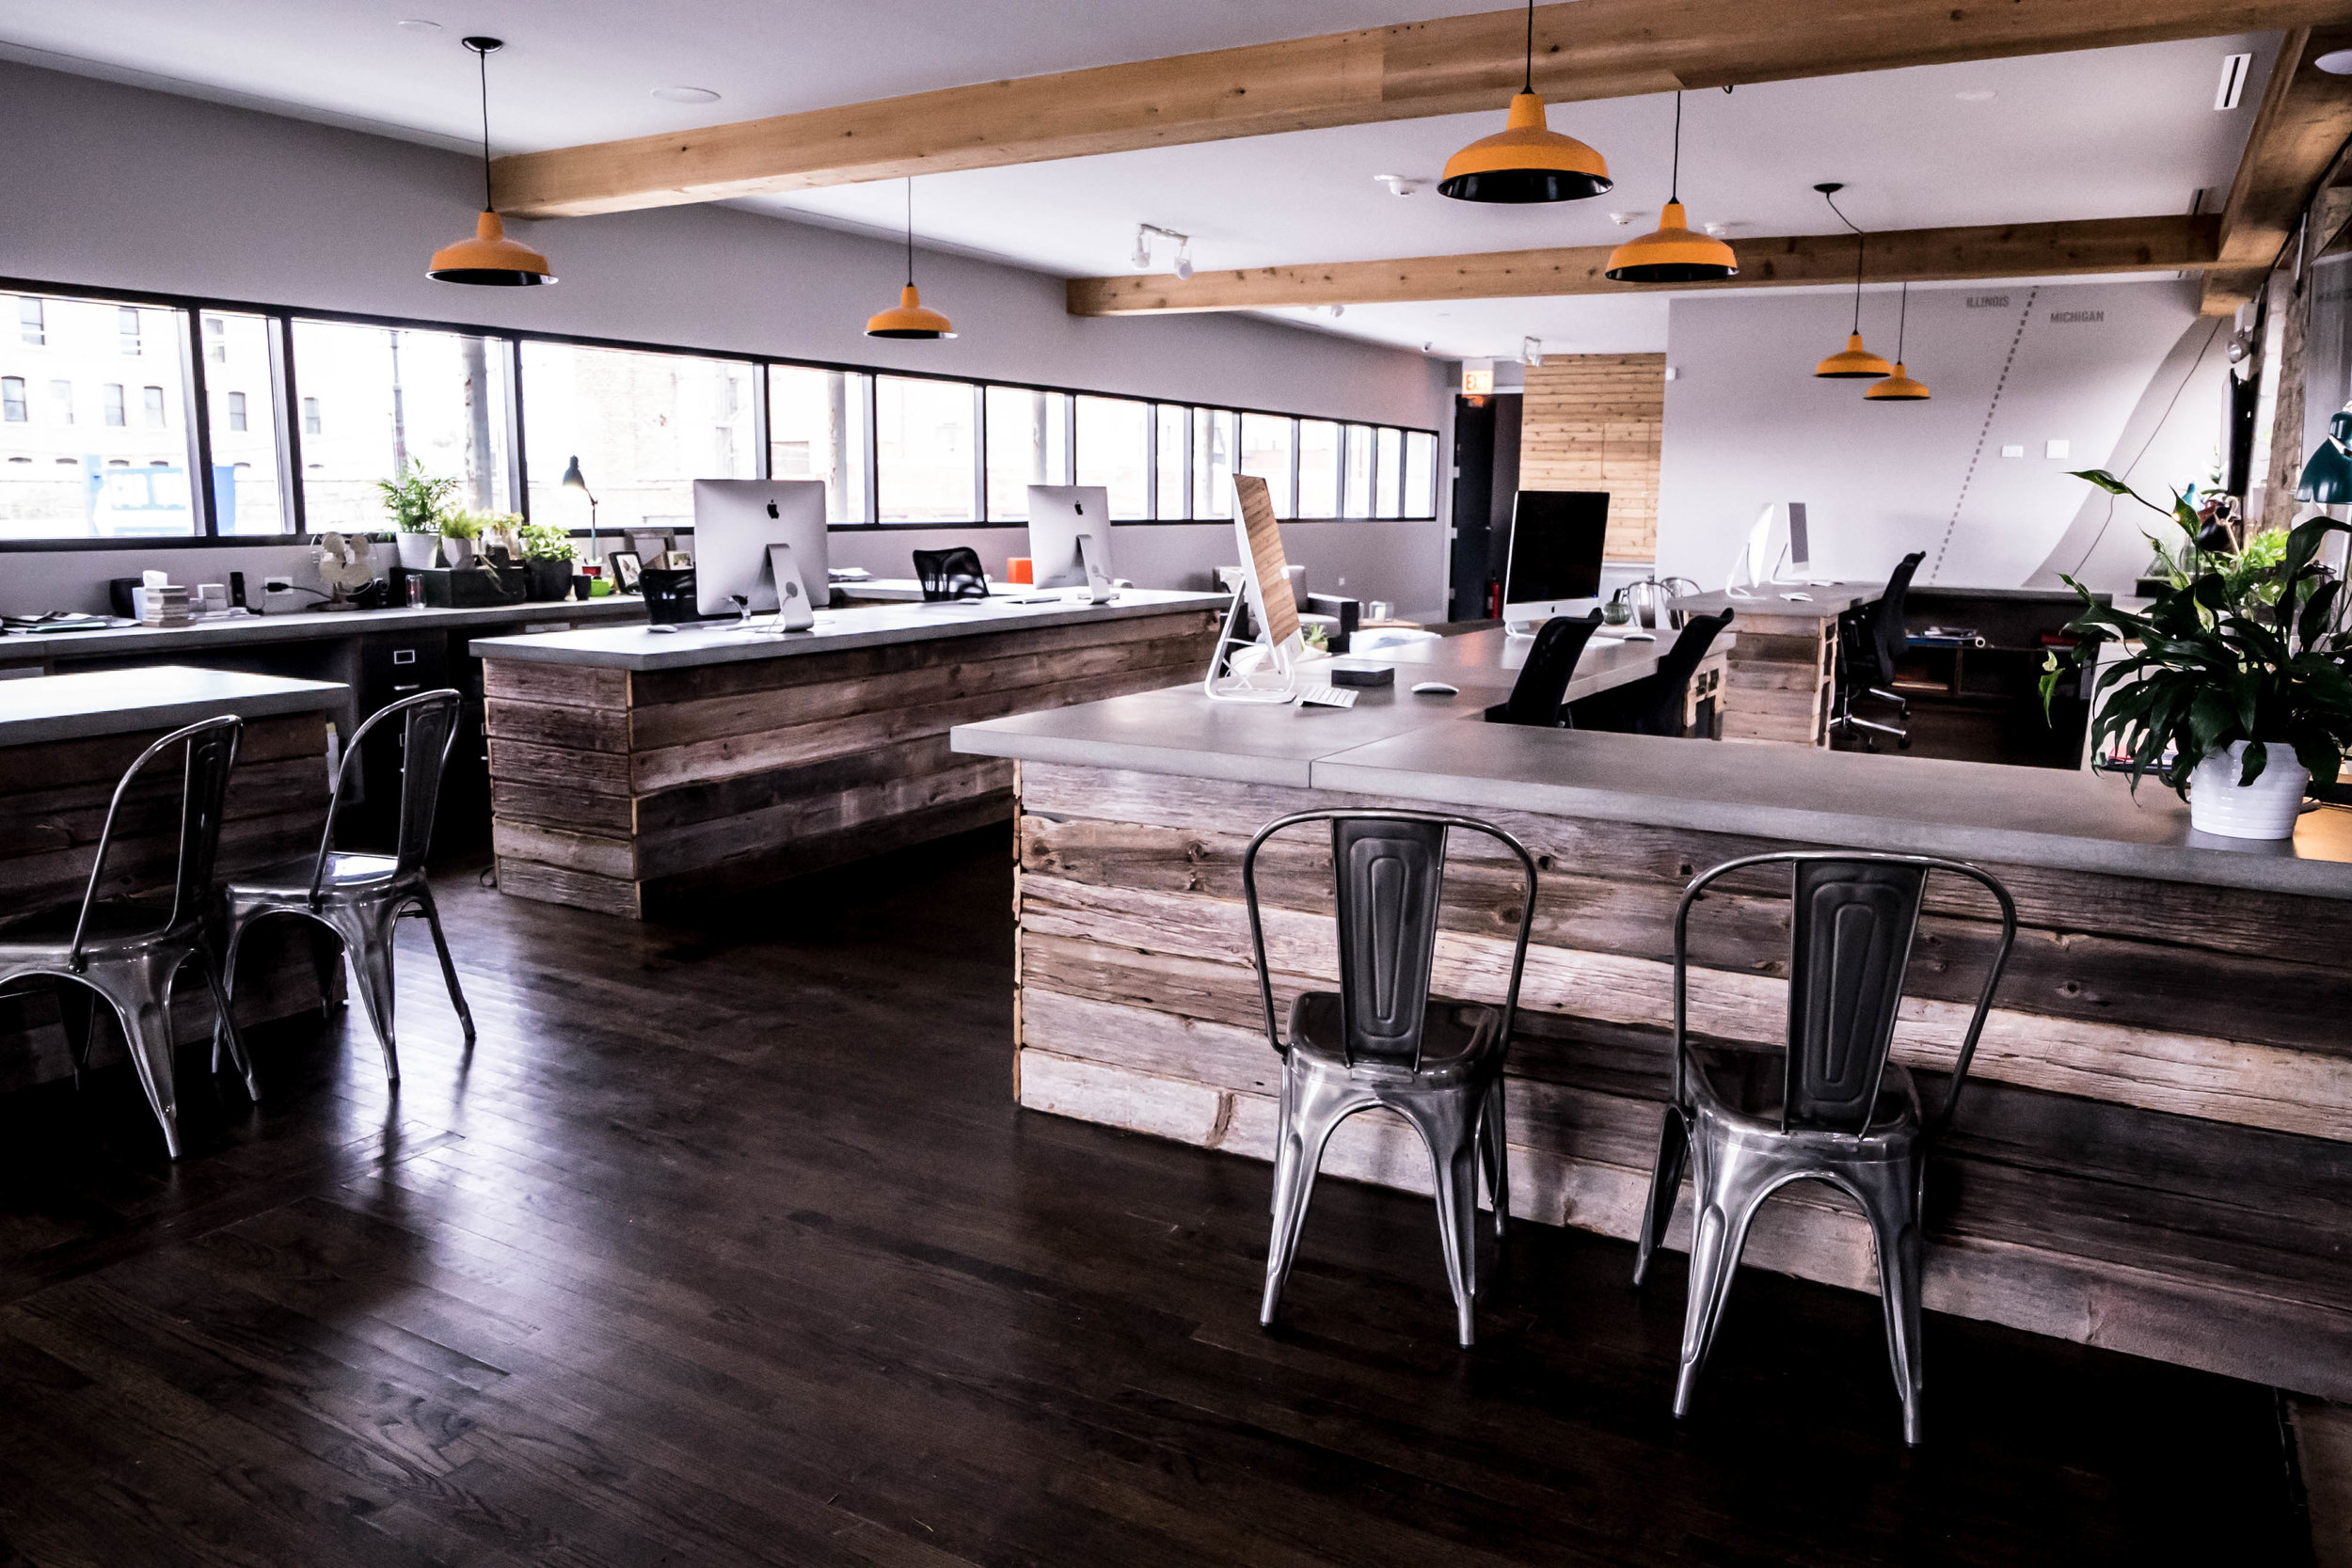 The new work space has desks that are cladded in reclaimed barn wood, all with concrete countertops and orange spotlights hanging above each person's spot.